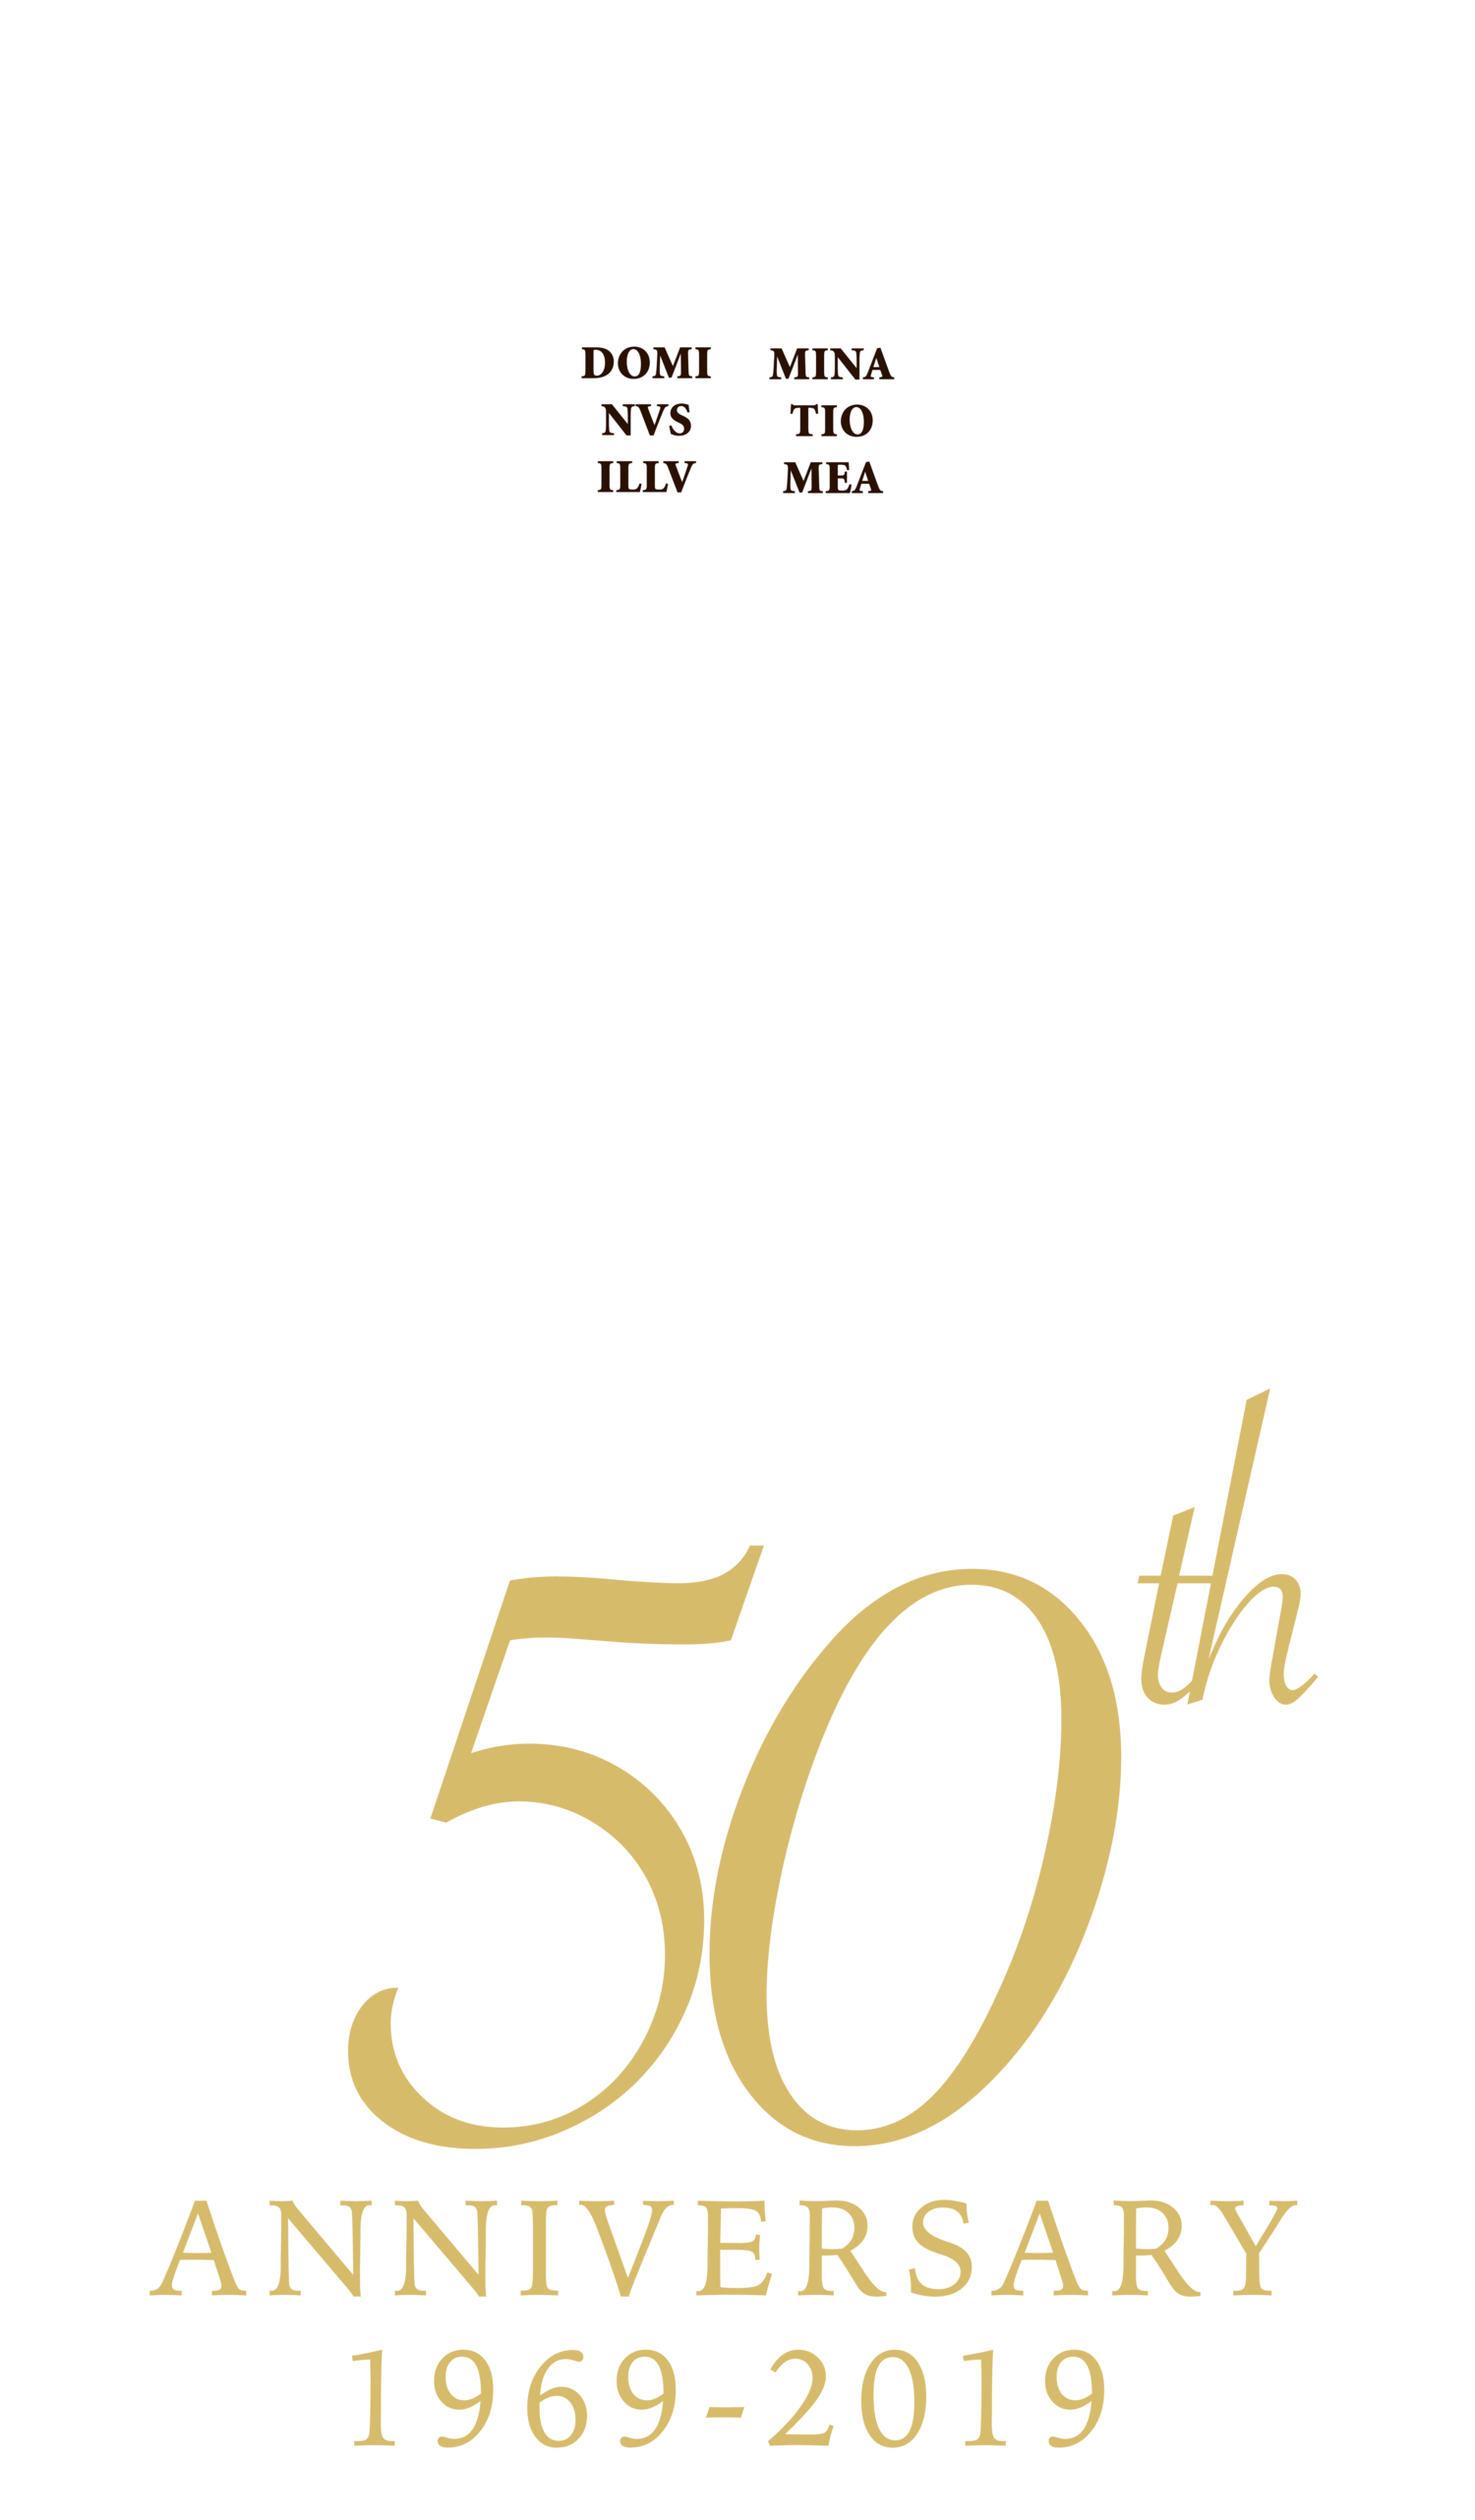 Oxford University Strategic Studies Group